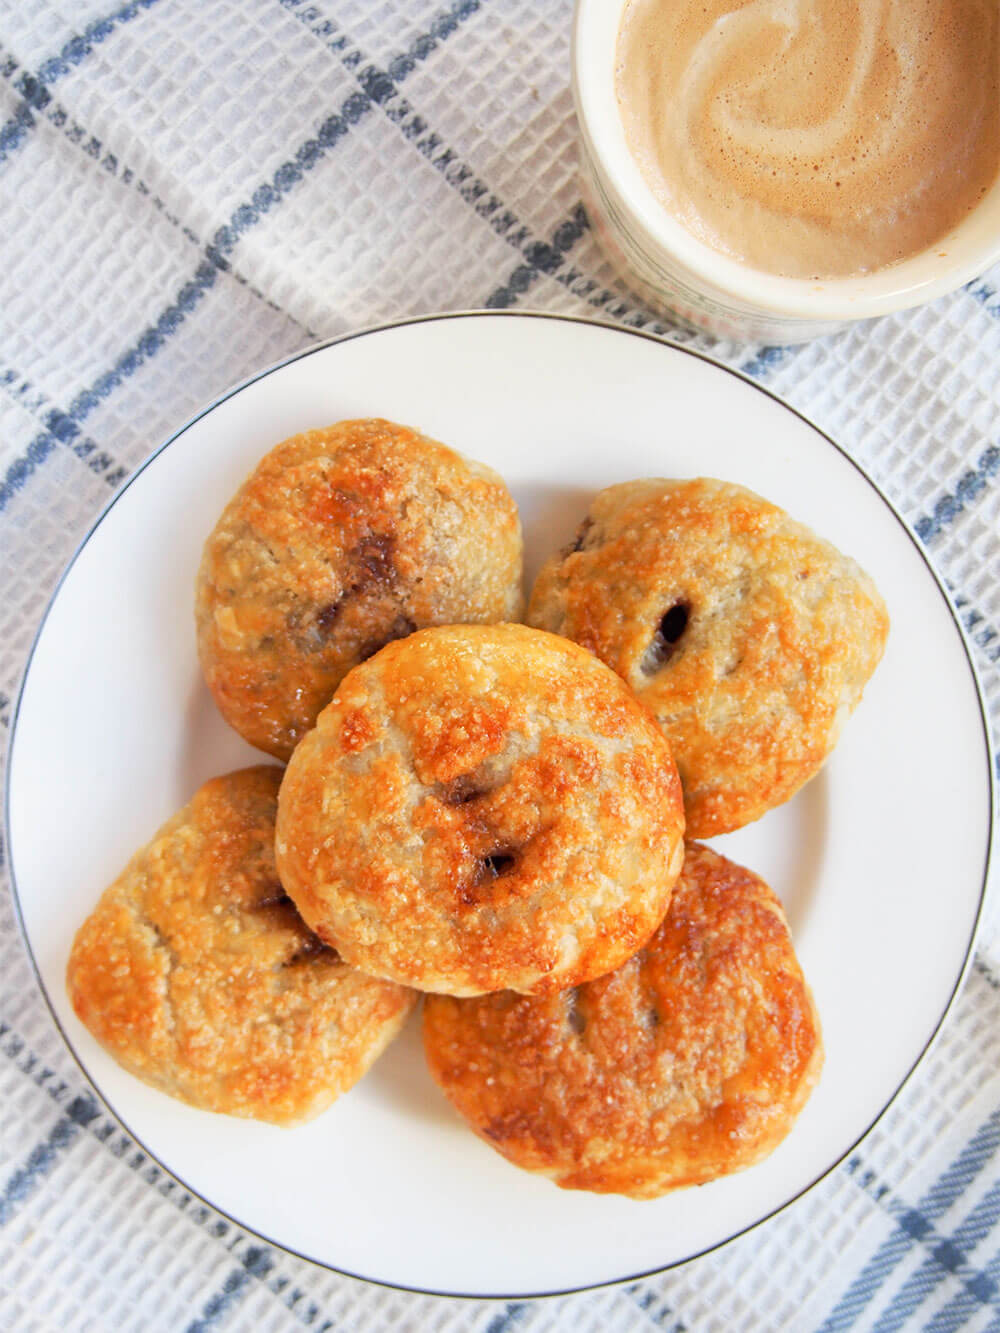 plate of Eccles cakes - crisp currant filled pastries from above